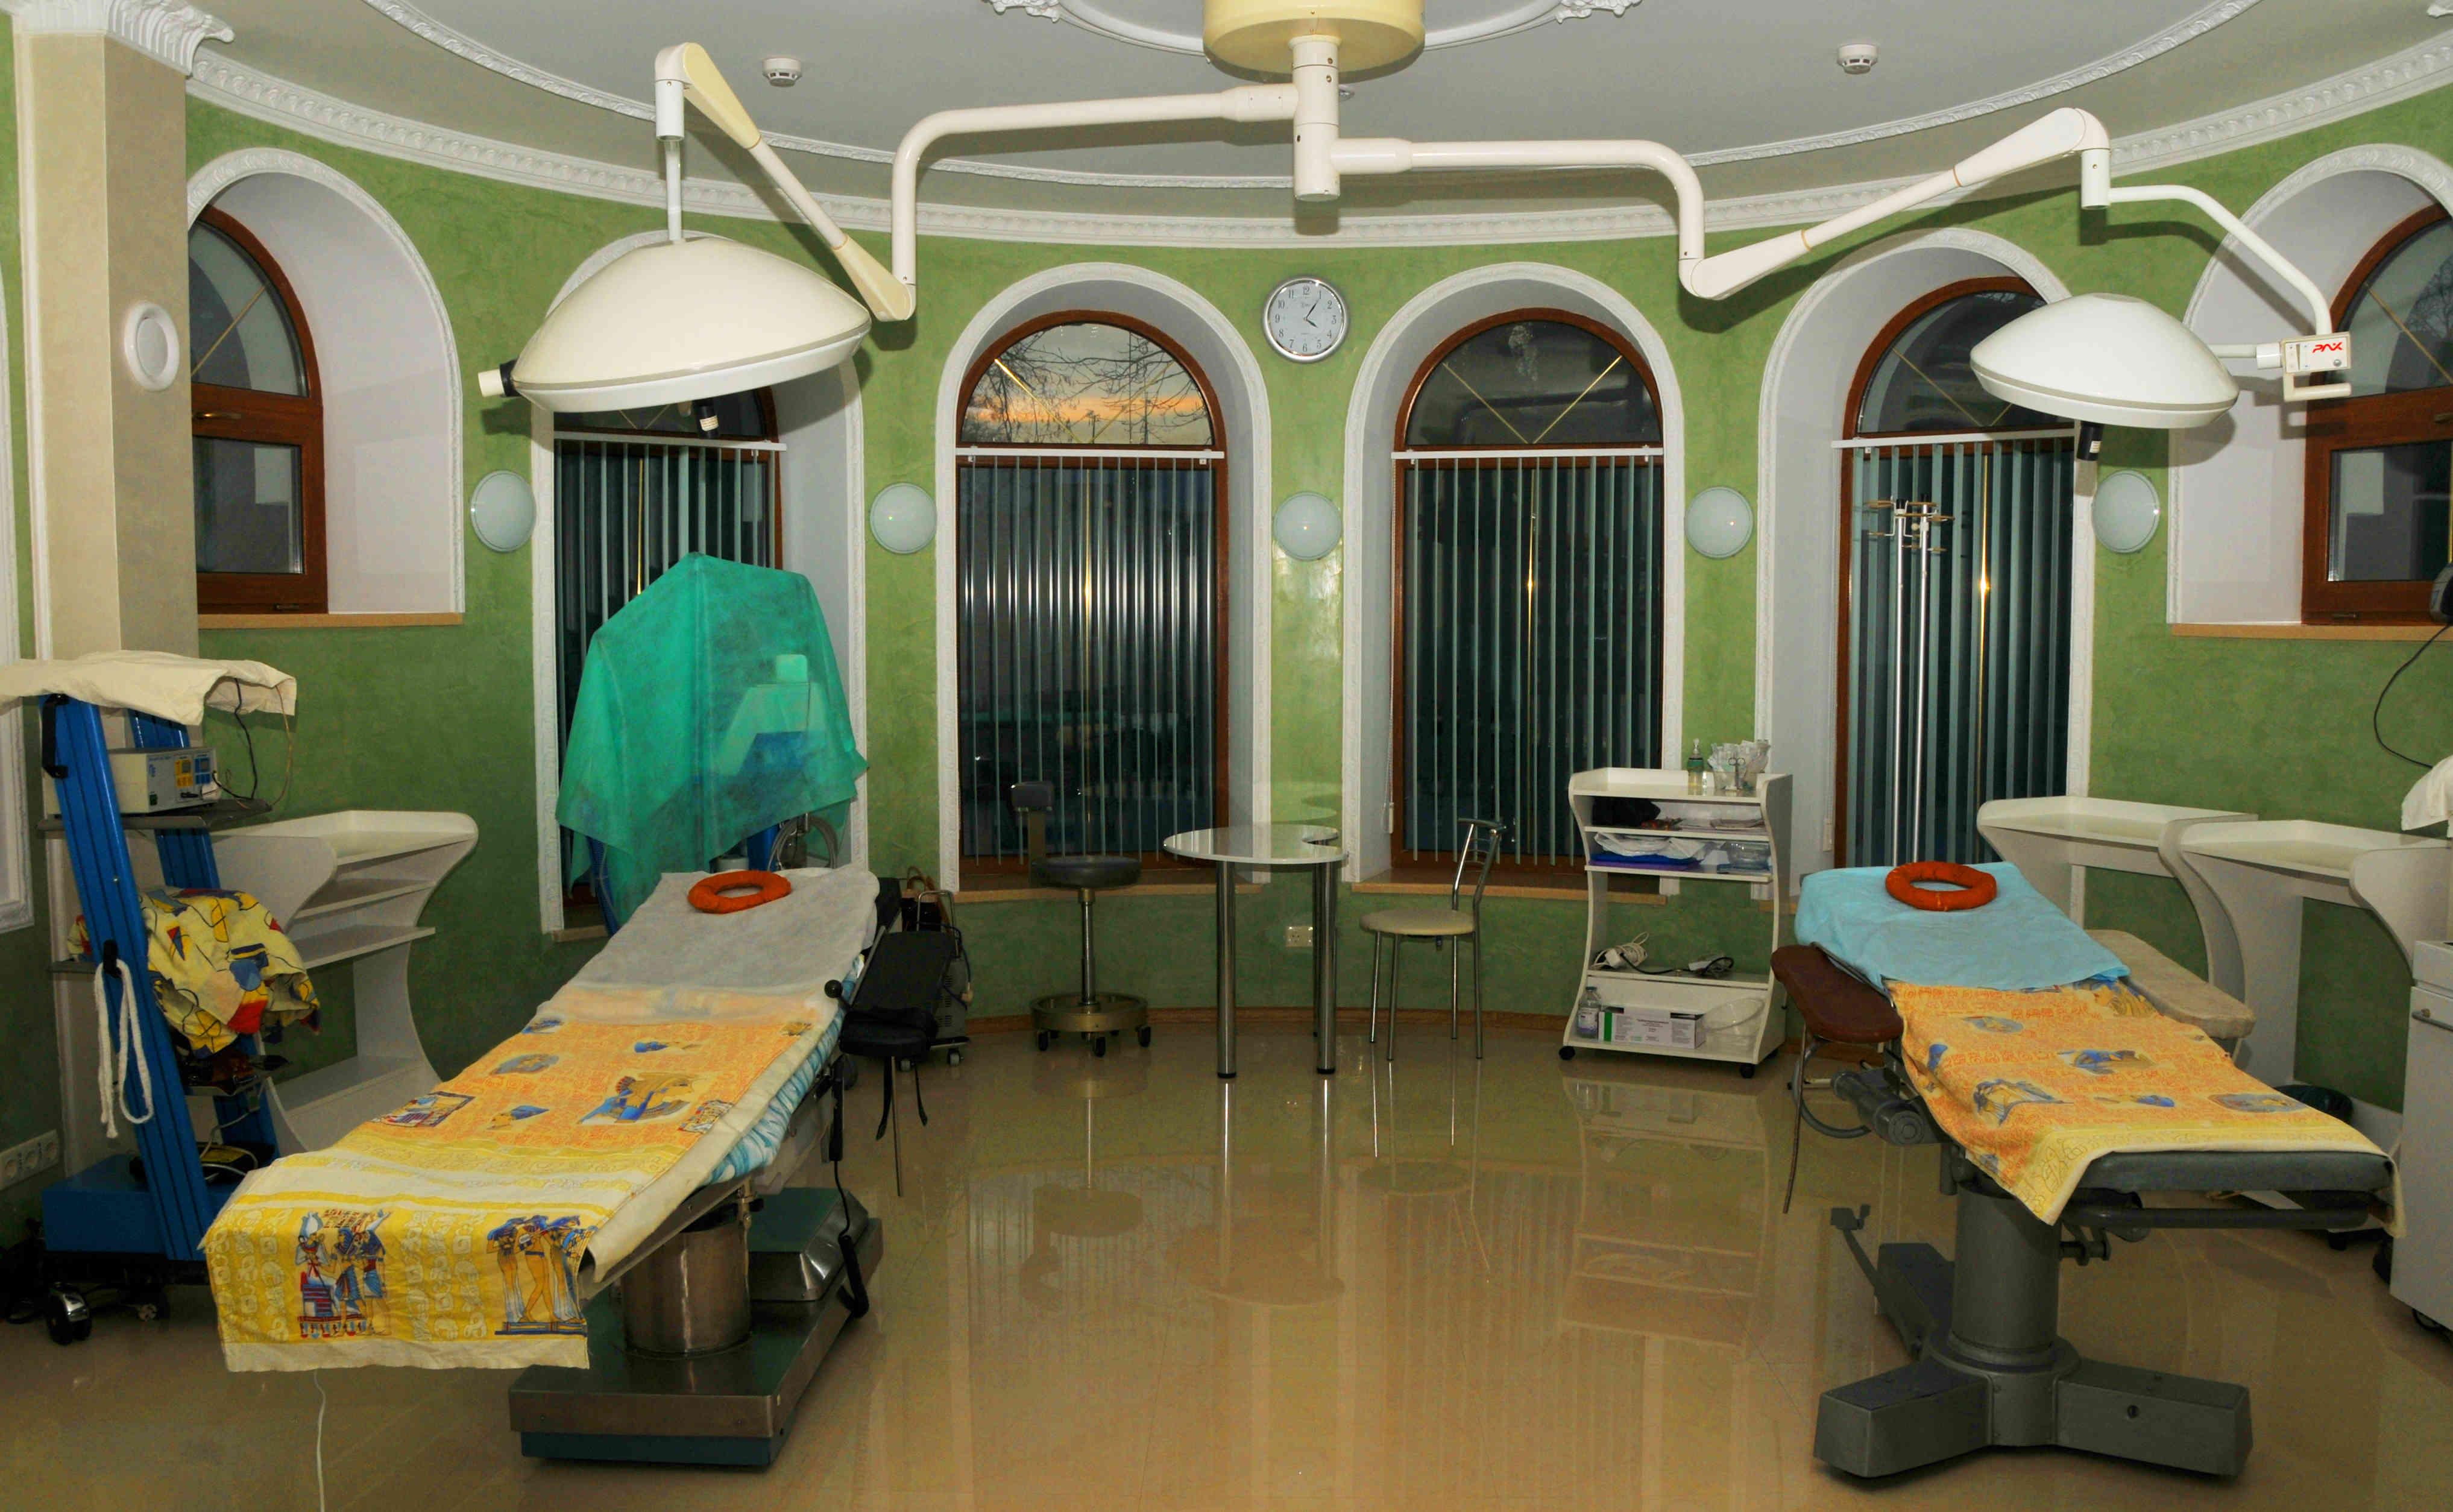 Plastic and Cosmetic surgery center photo 3